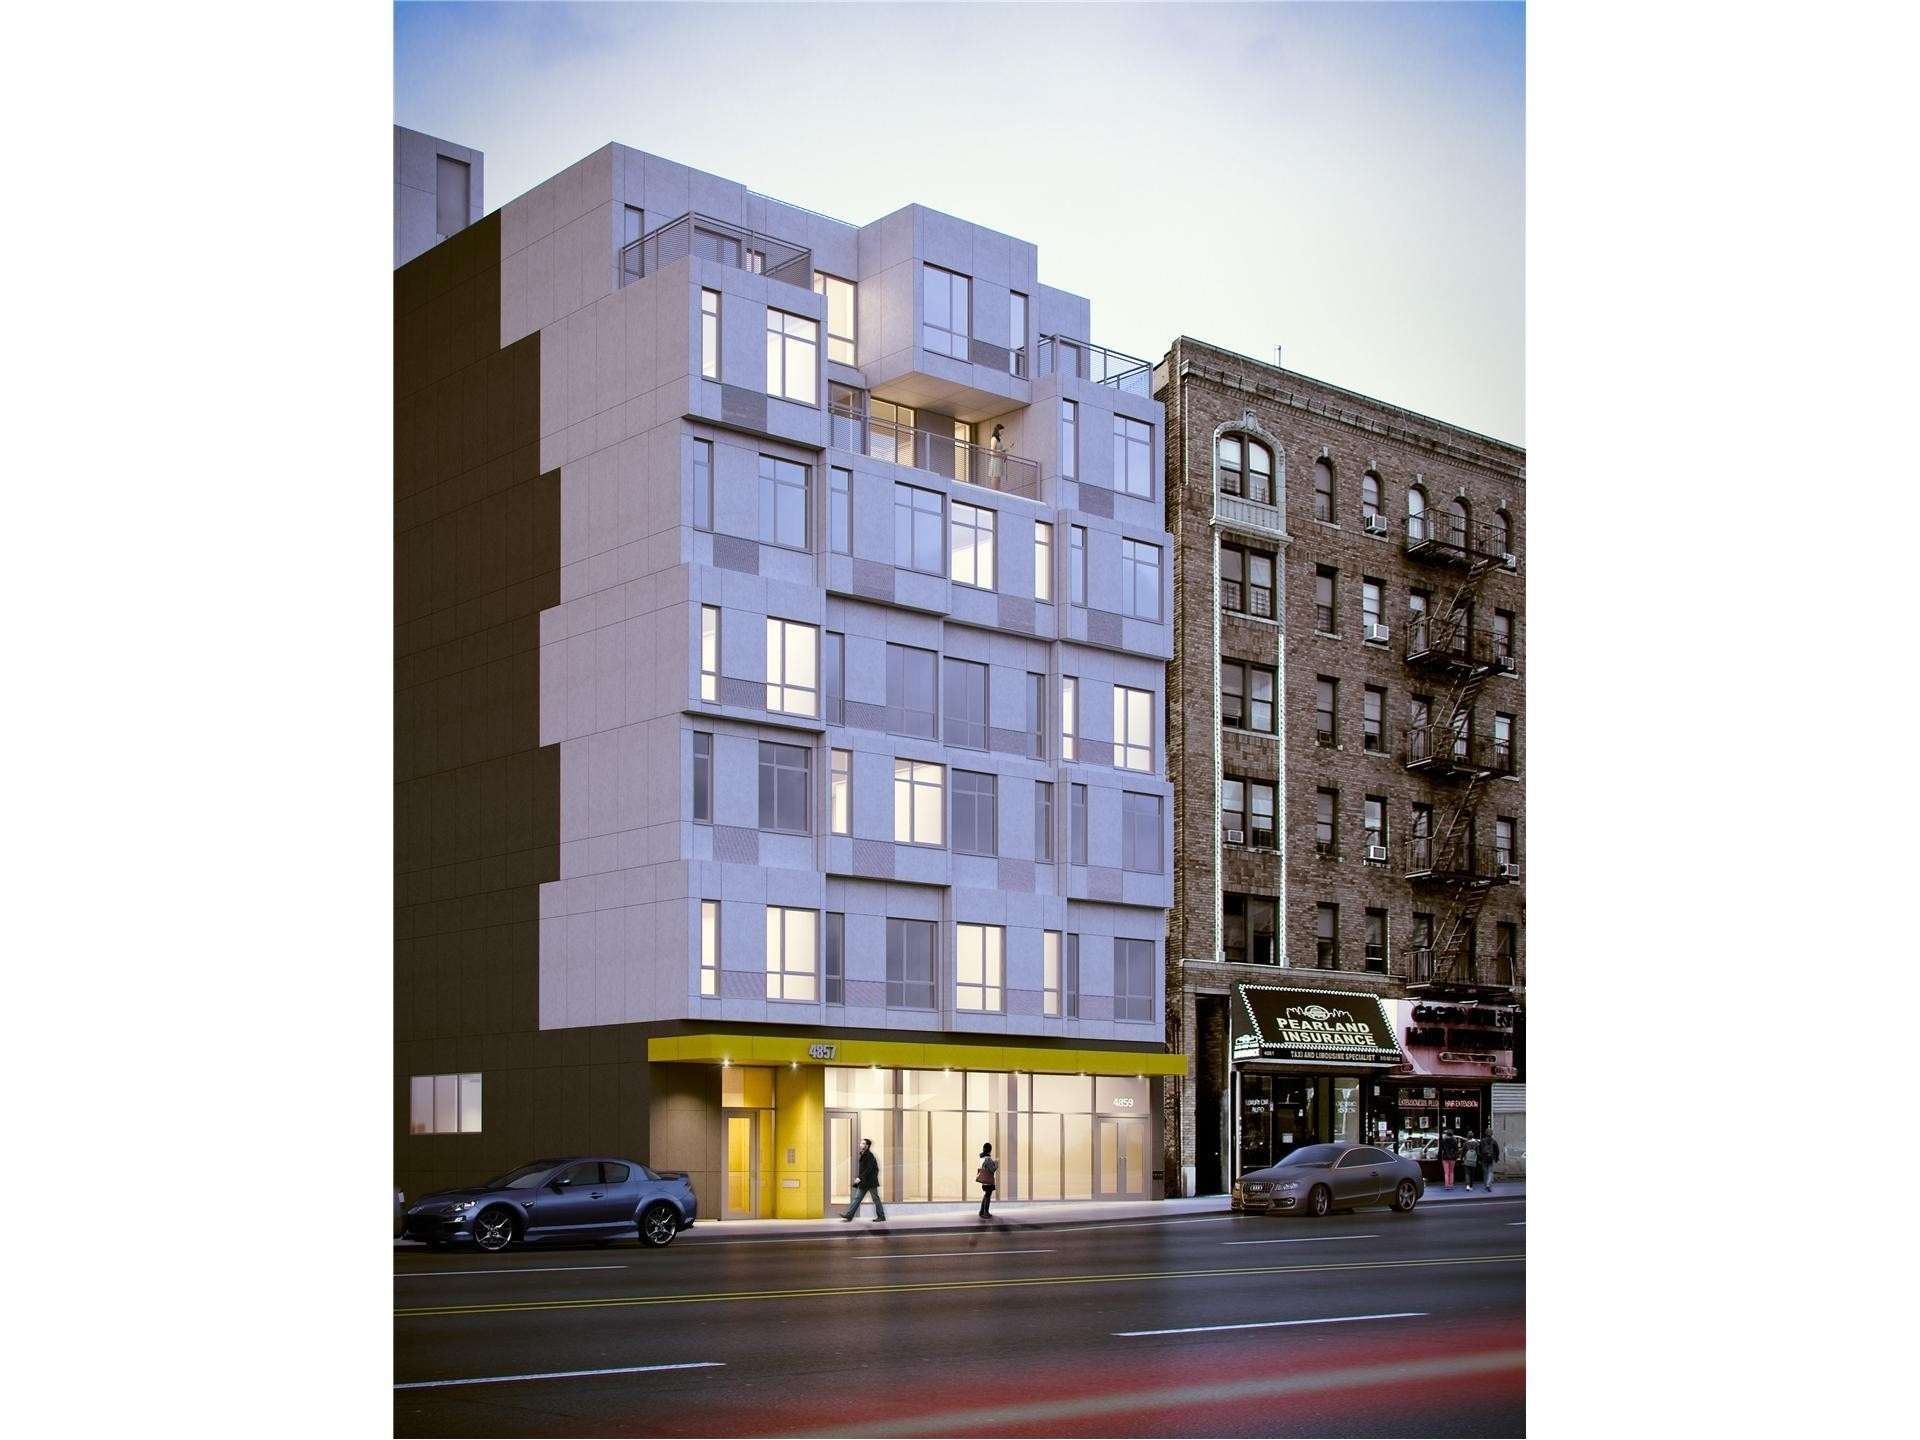 Property à The Stack, 4857 Broadway, 3E Inwood, New York, NY 10034